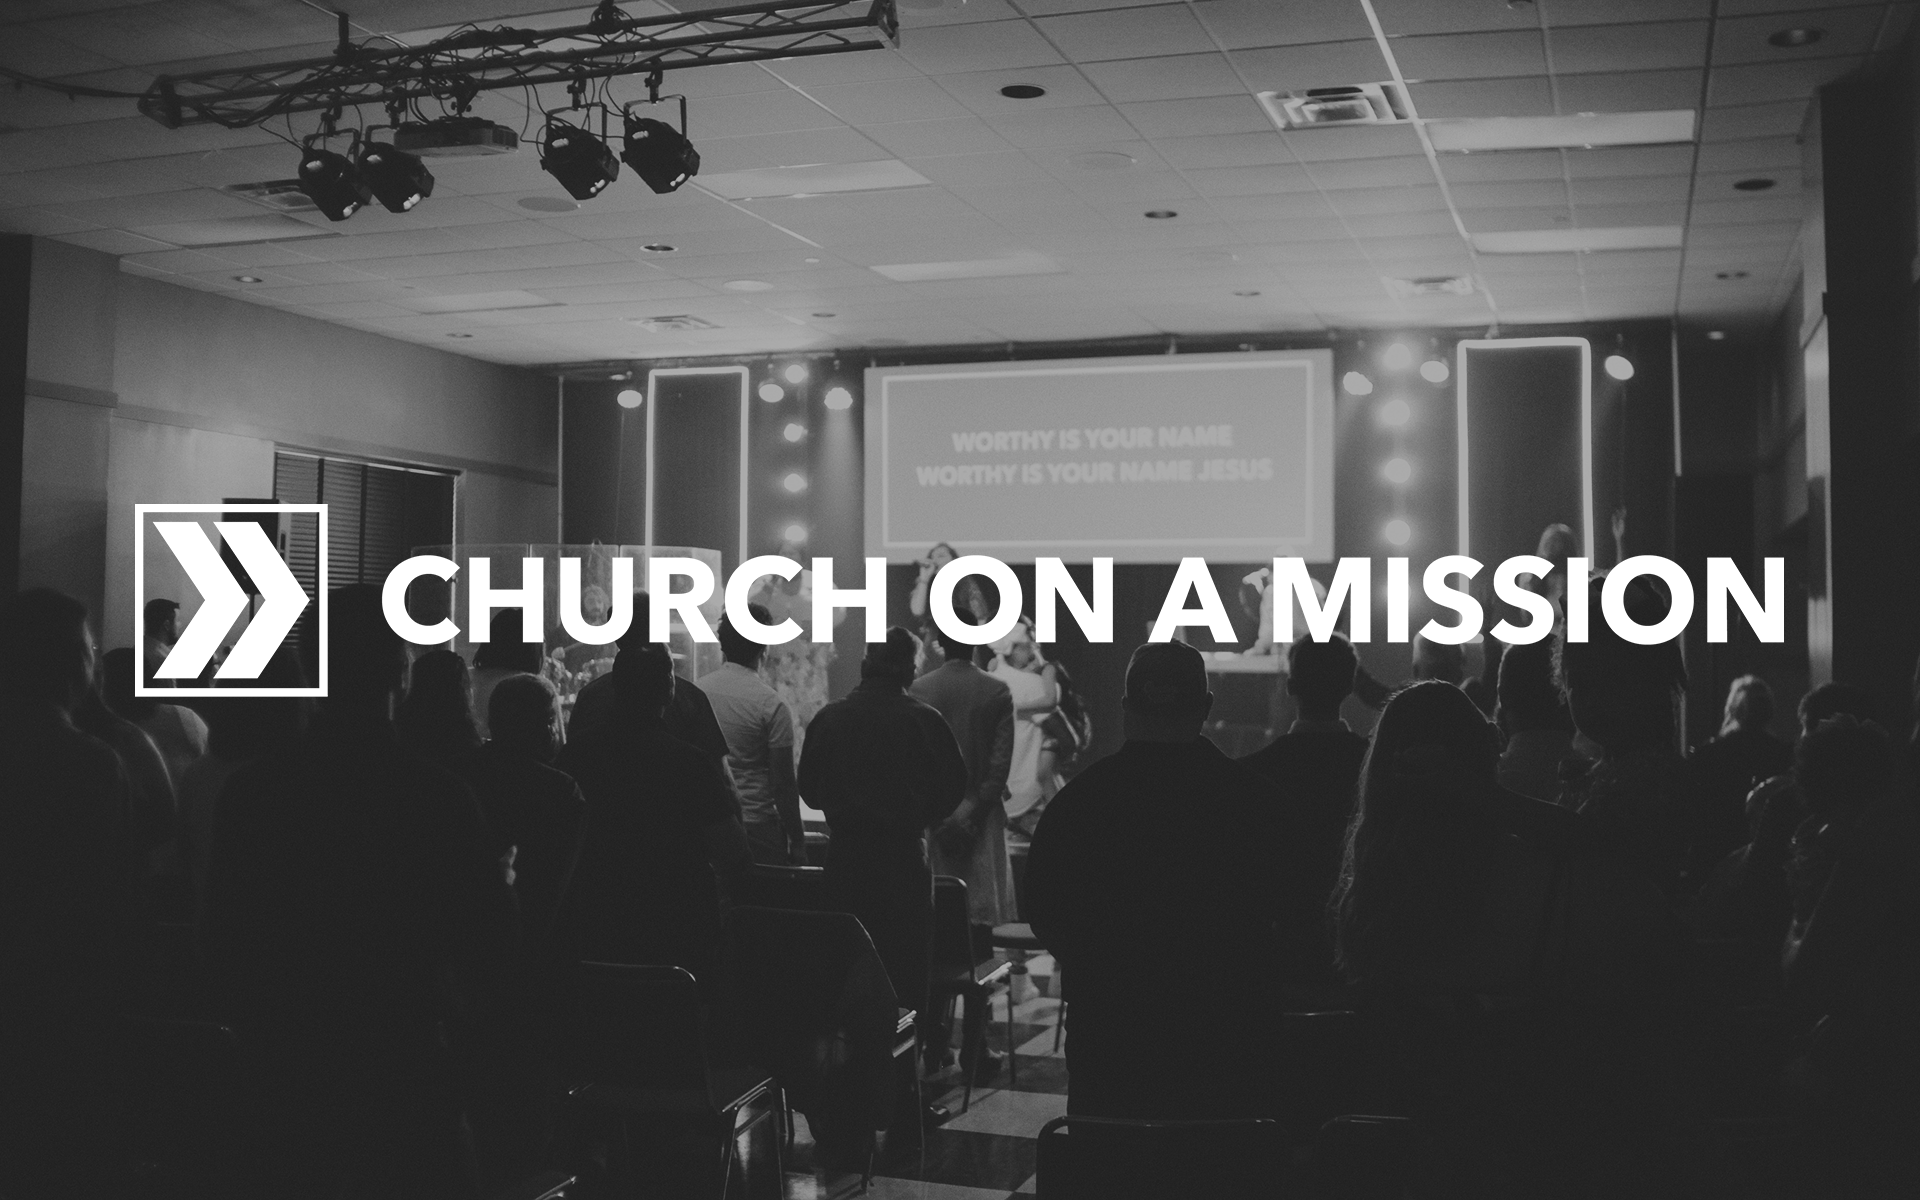 Church on a mission hope app